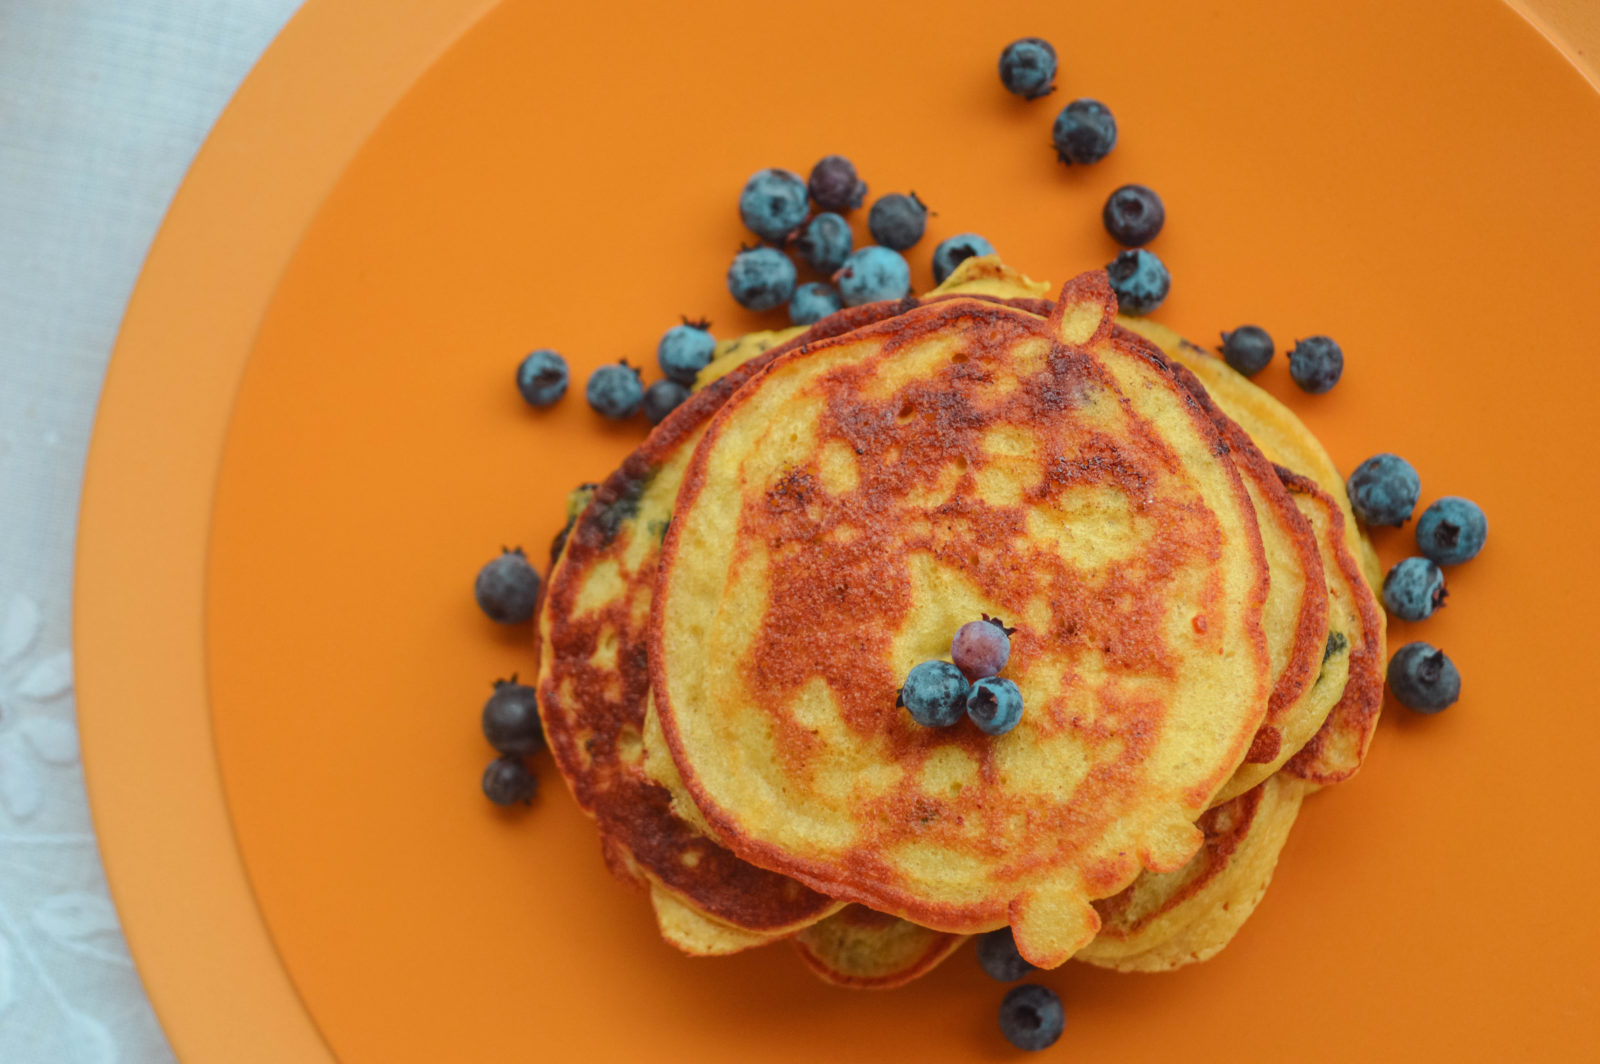 Gluten-free Lemon and Wild Blueberry Ricotta Pancakes